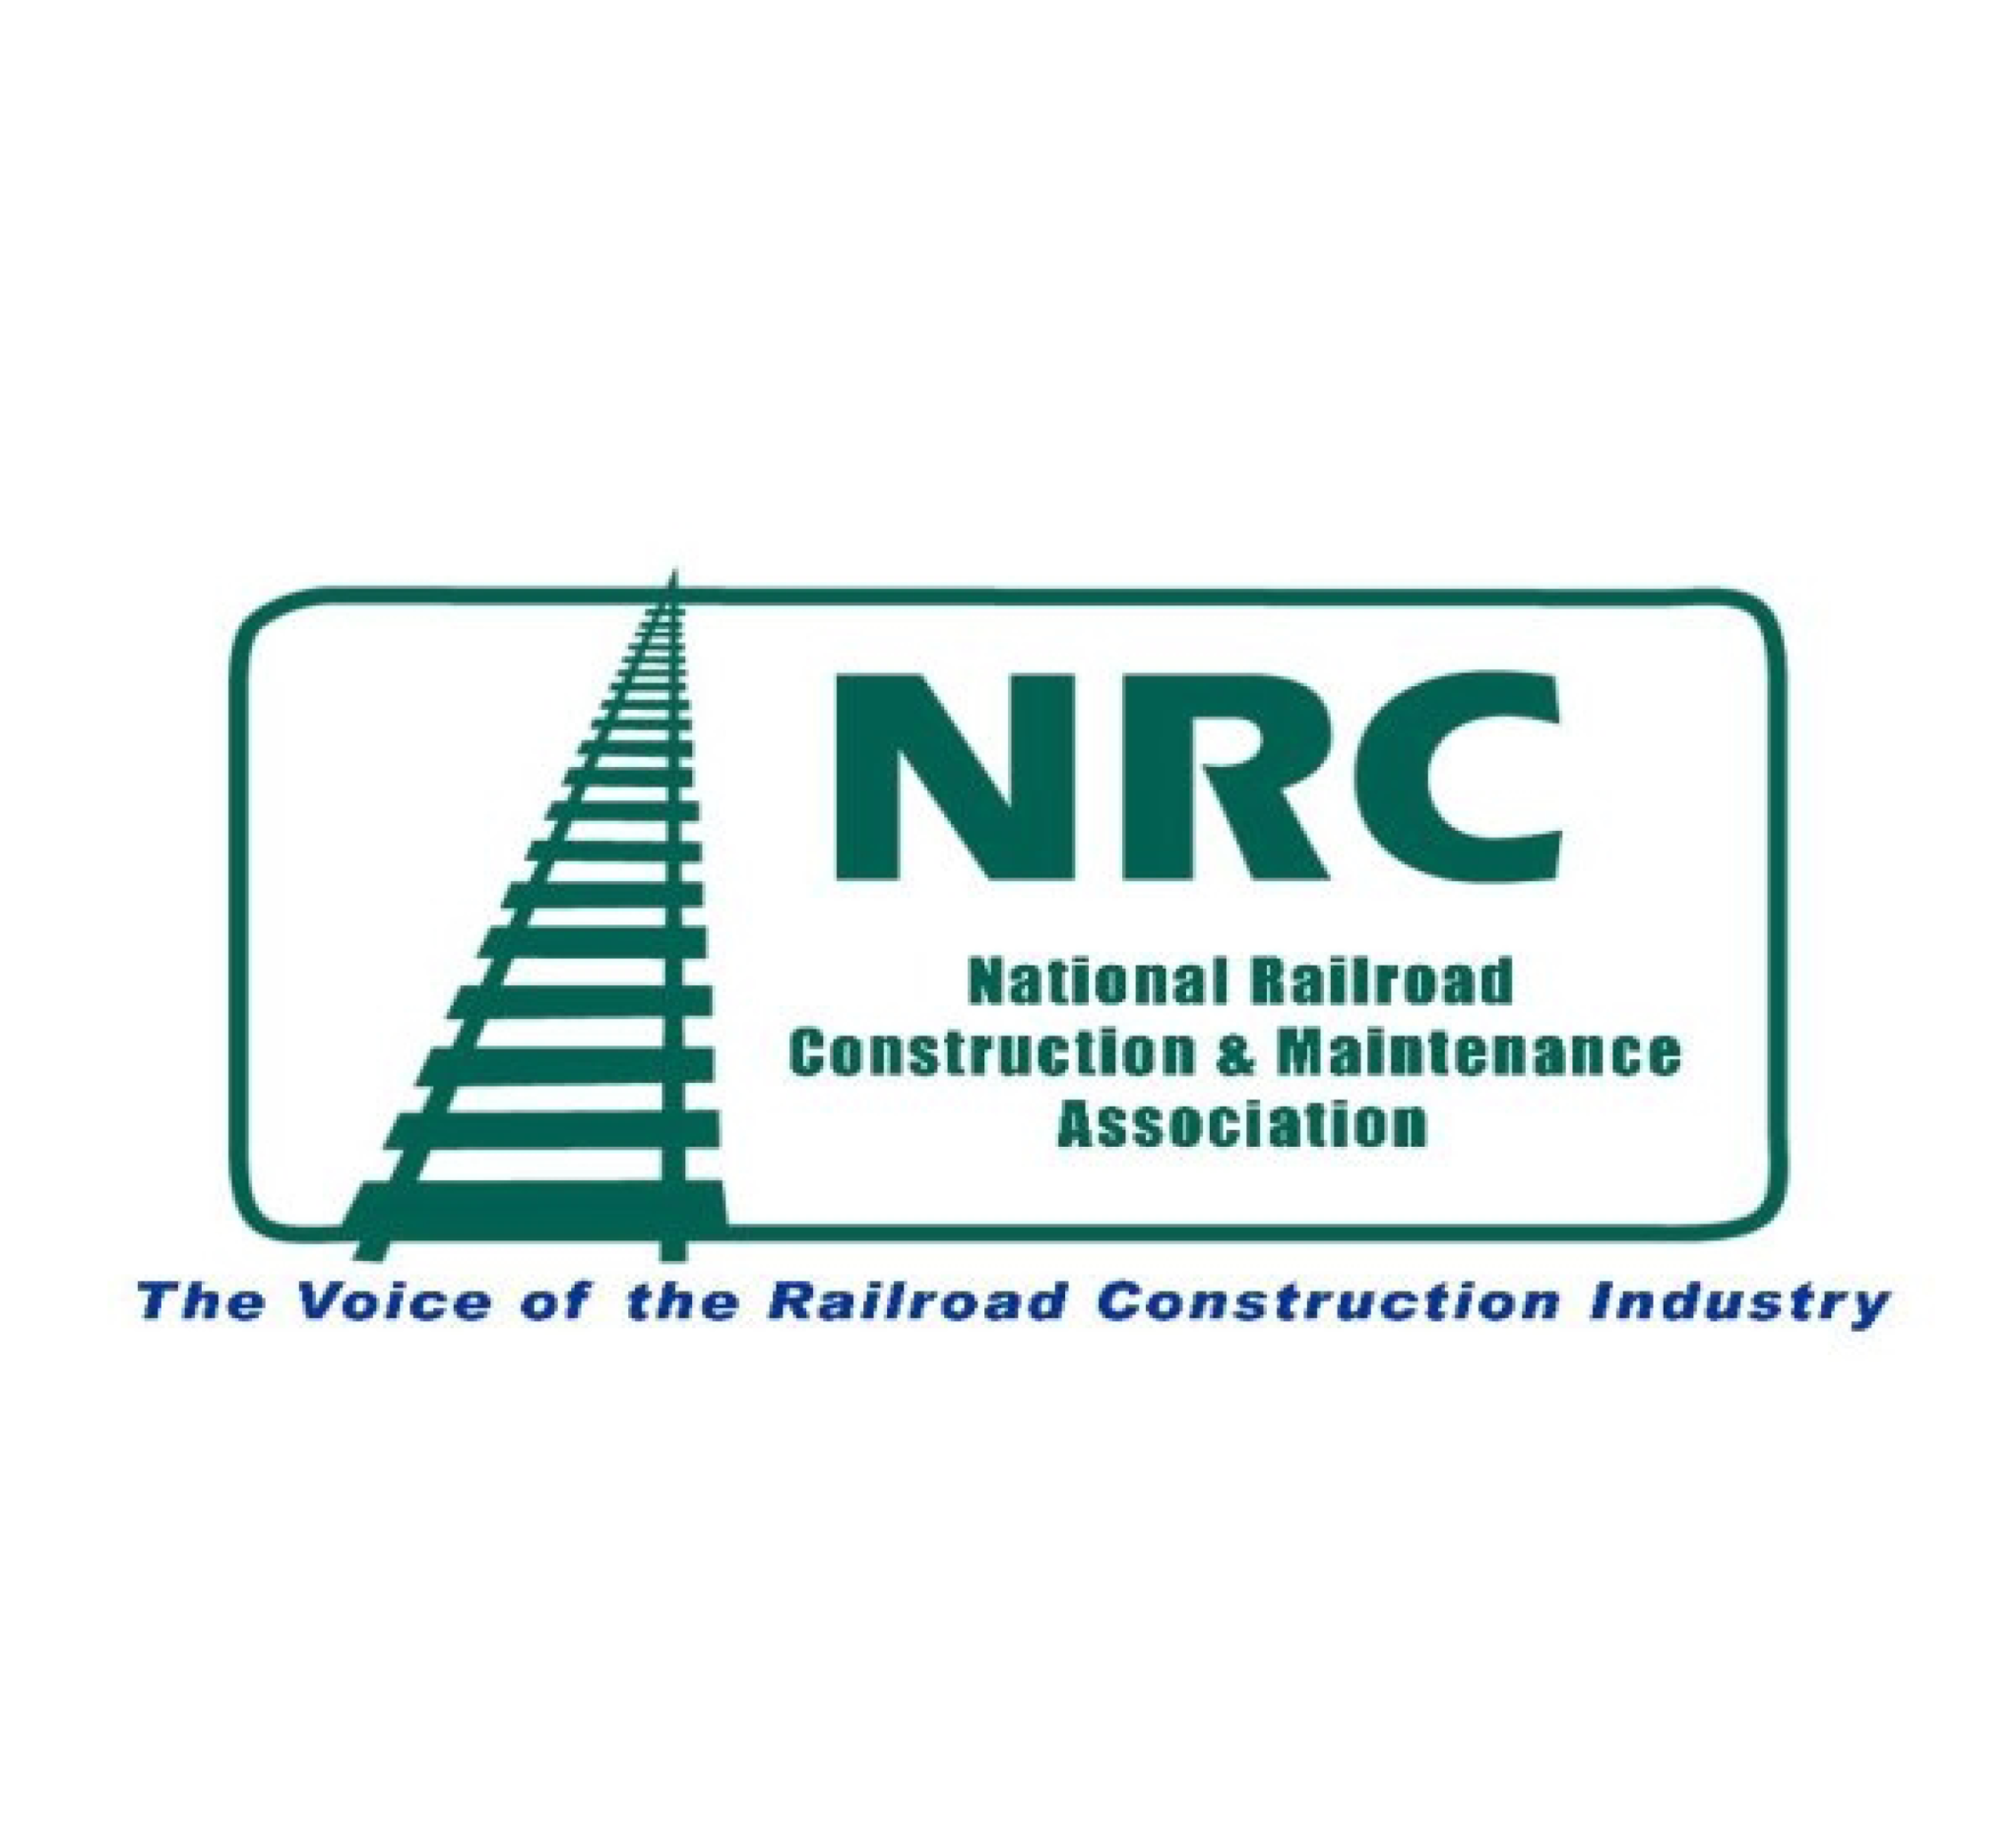 National Railroad Construction and Maintenance Association